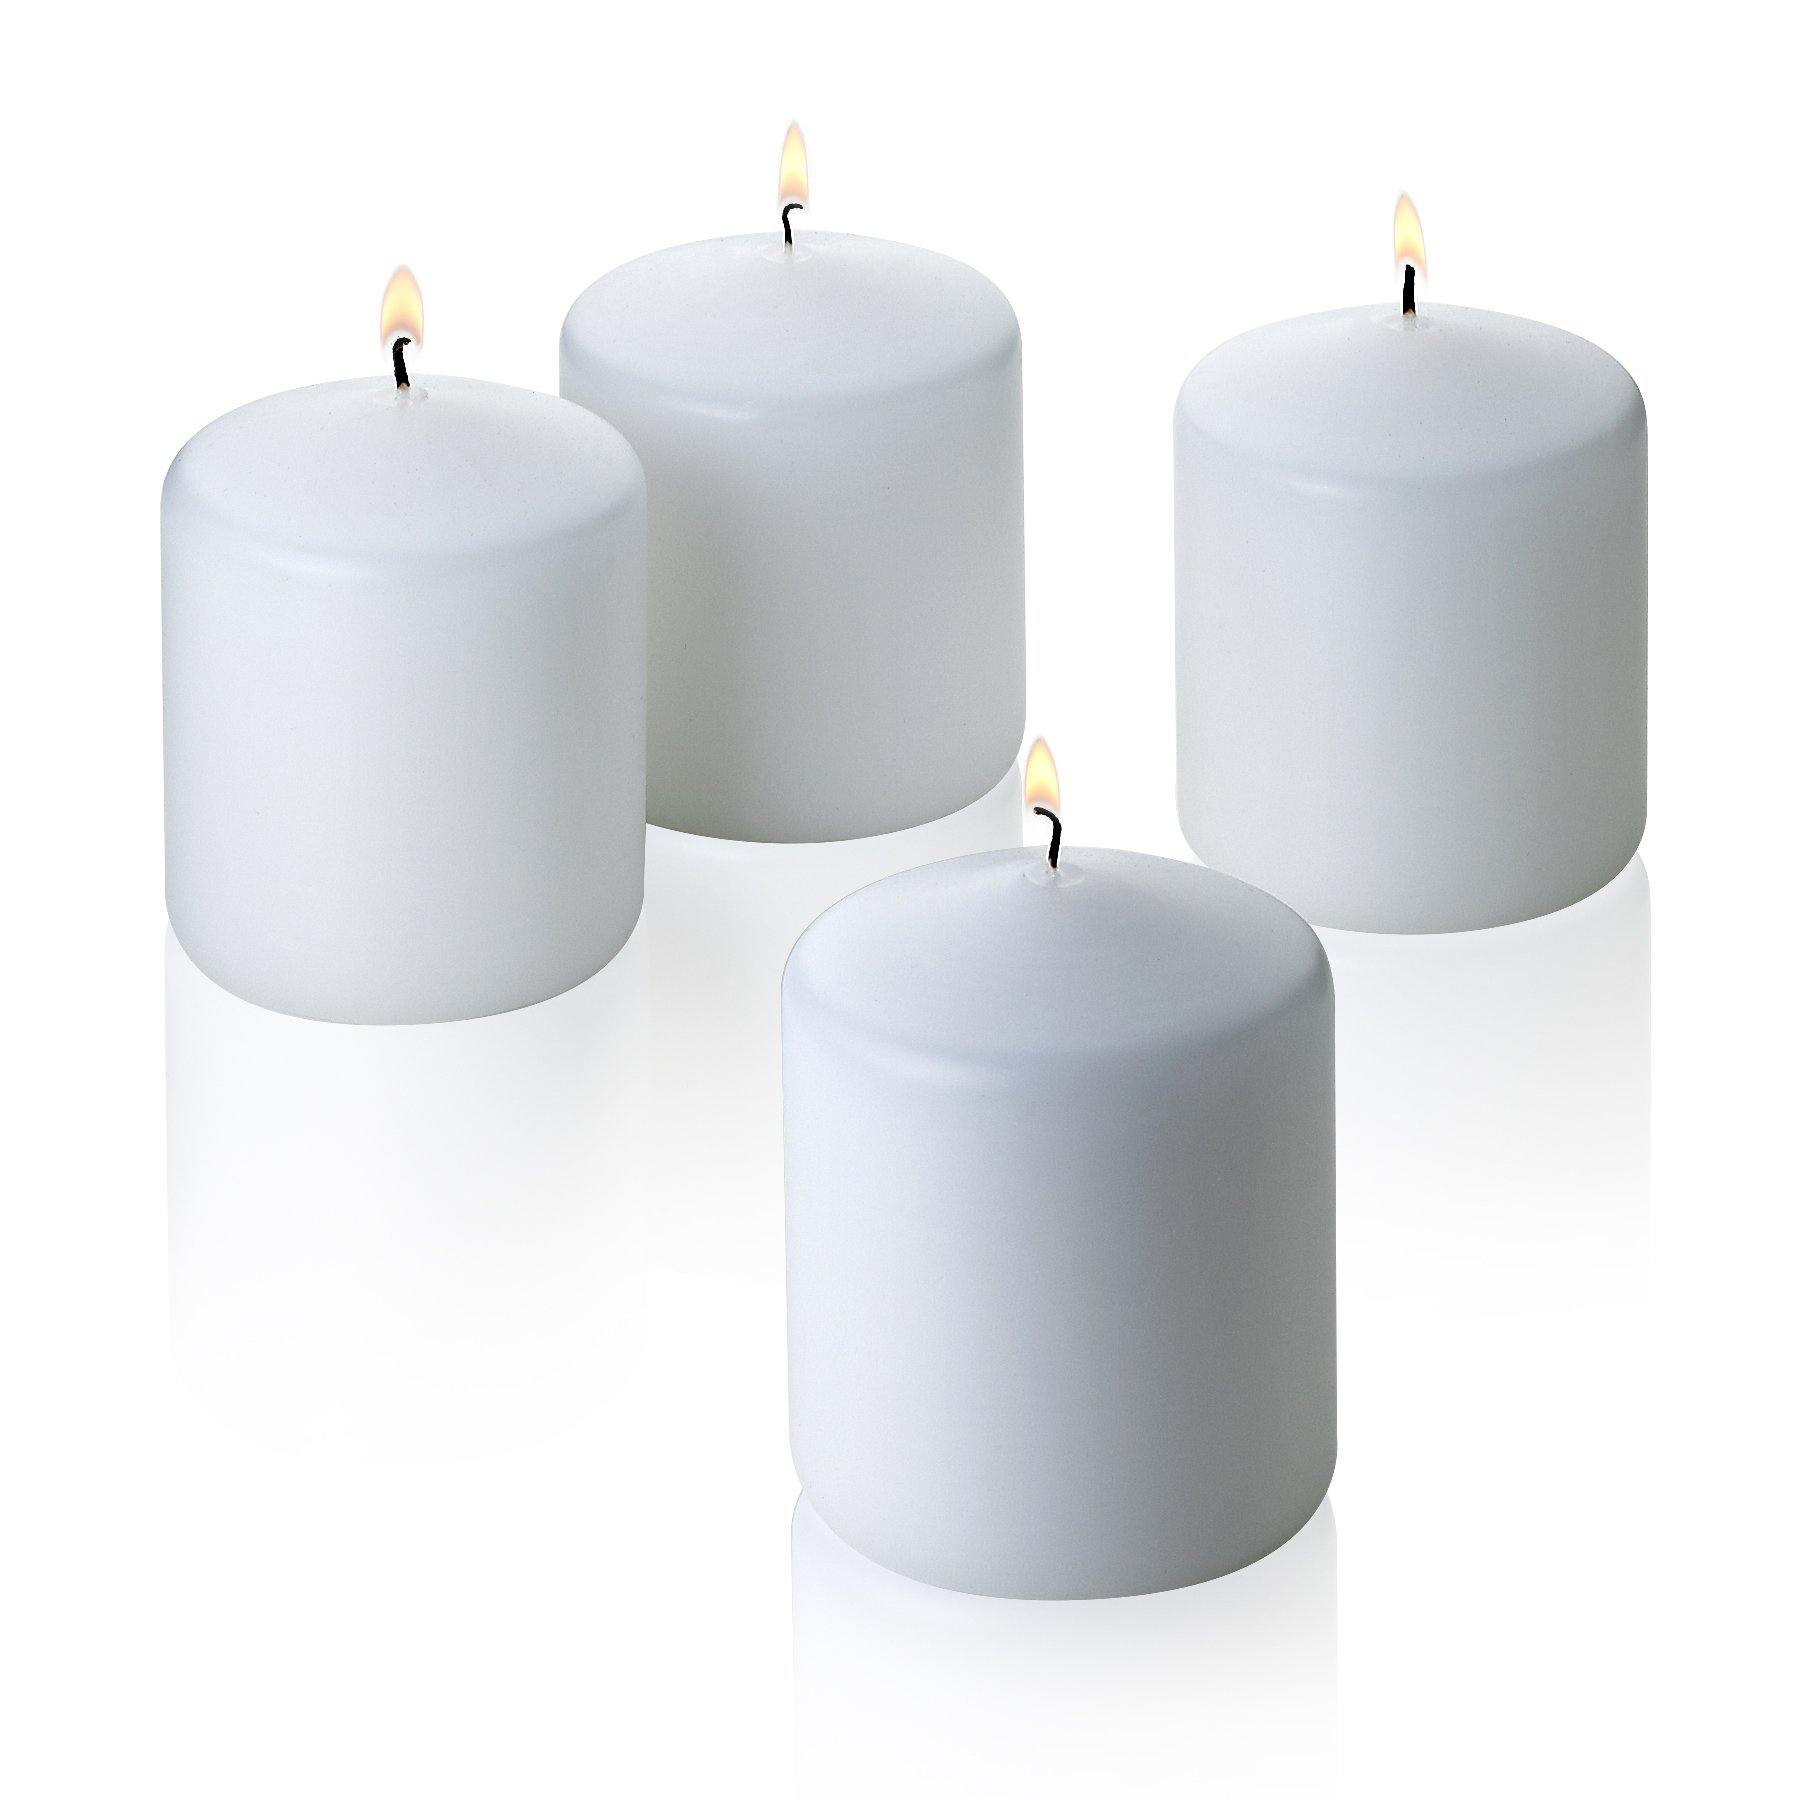 Light In The Dark White Pillar Candles - Set of 4 Unscented Candles - 3 inch Tall, 3 inch Thick -18 hour Clean Burn Time.